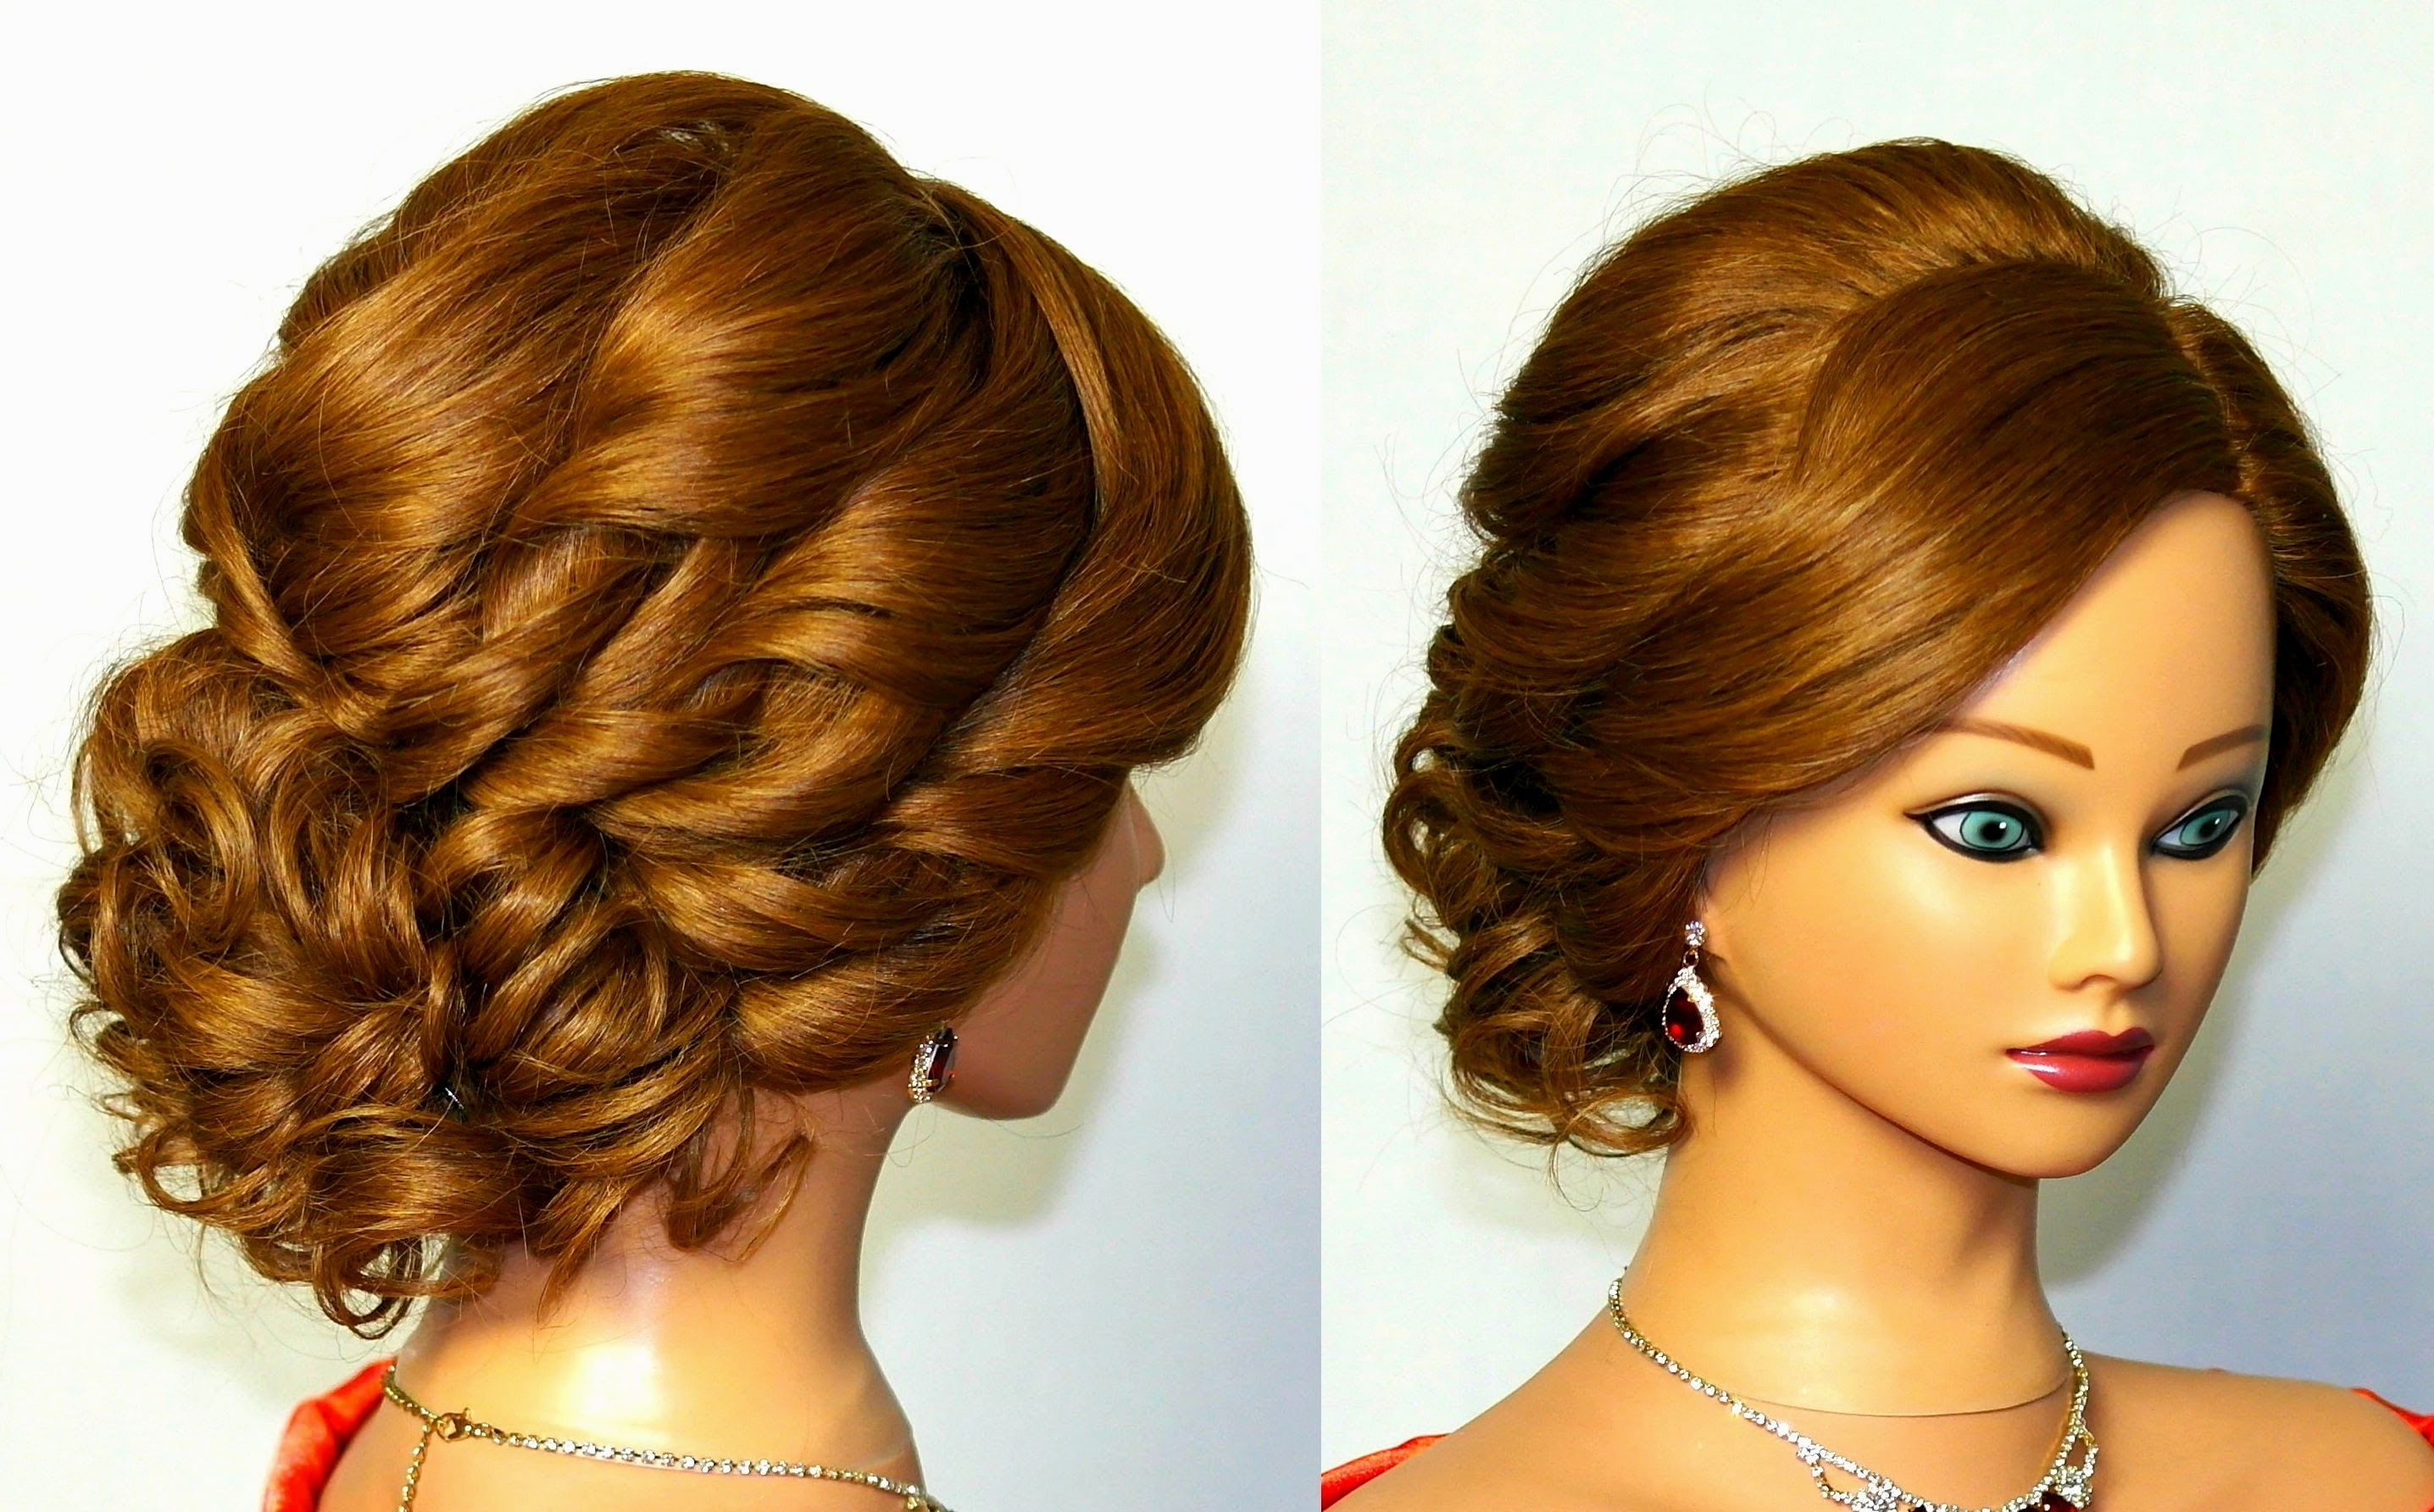 Bridesmaid Hairstyles Curly Hair Updo Hairstyle Pop Ideas Of Curly Regarding Updos For Curly Hair (View 3 of 15)